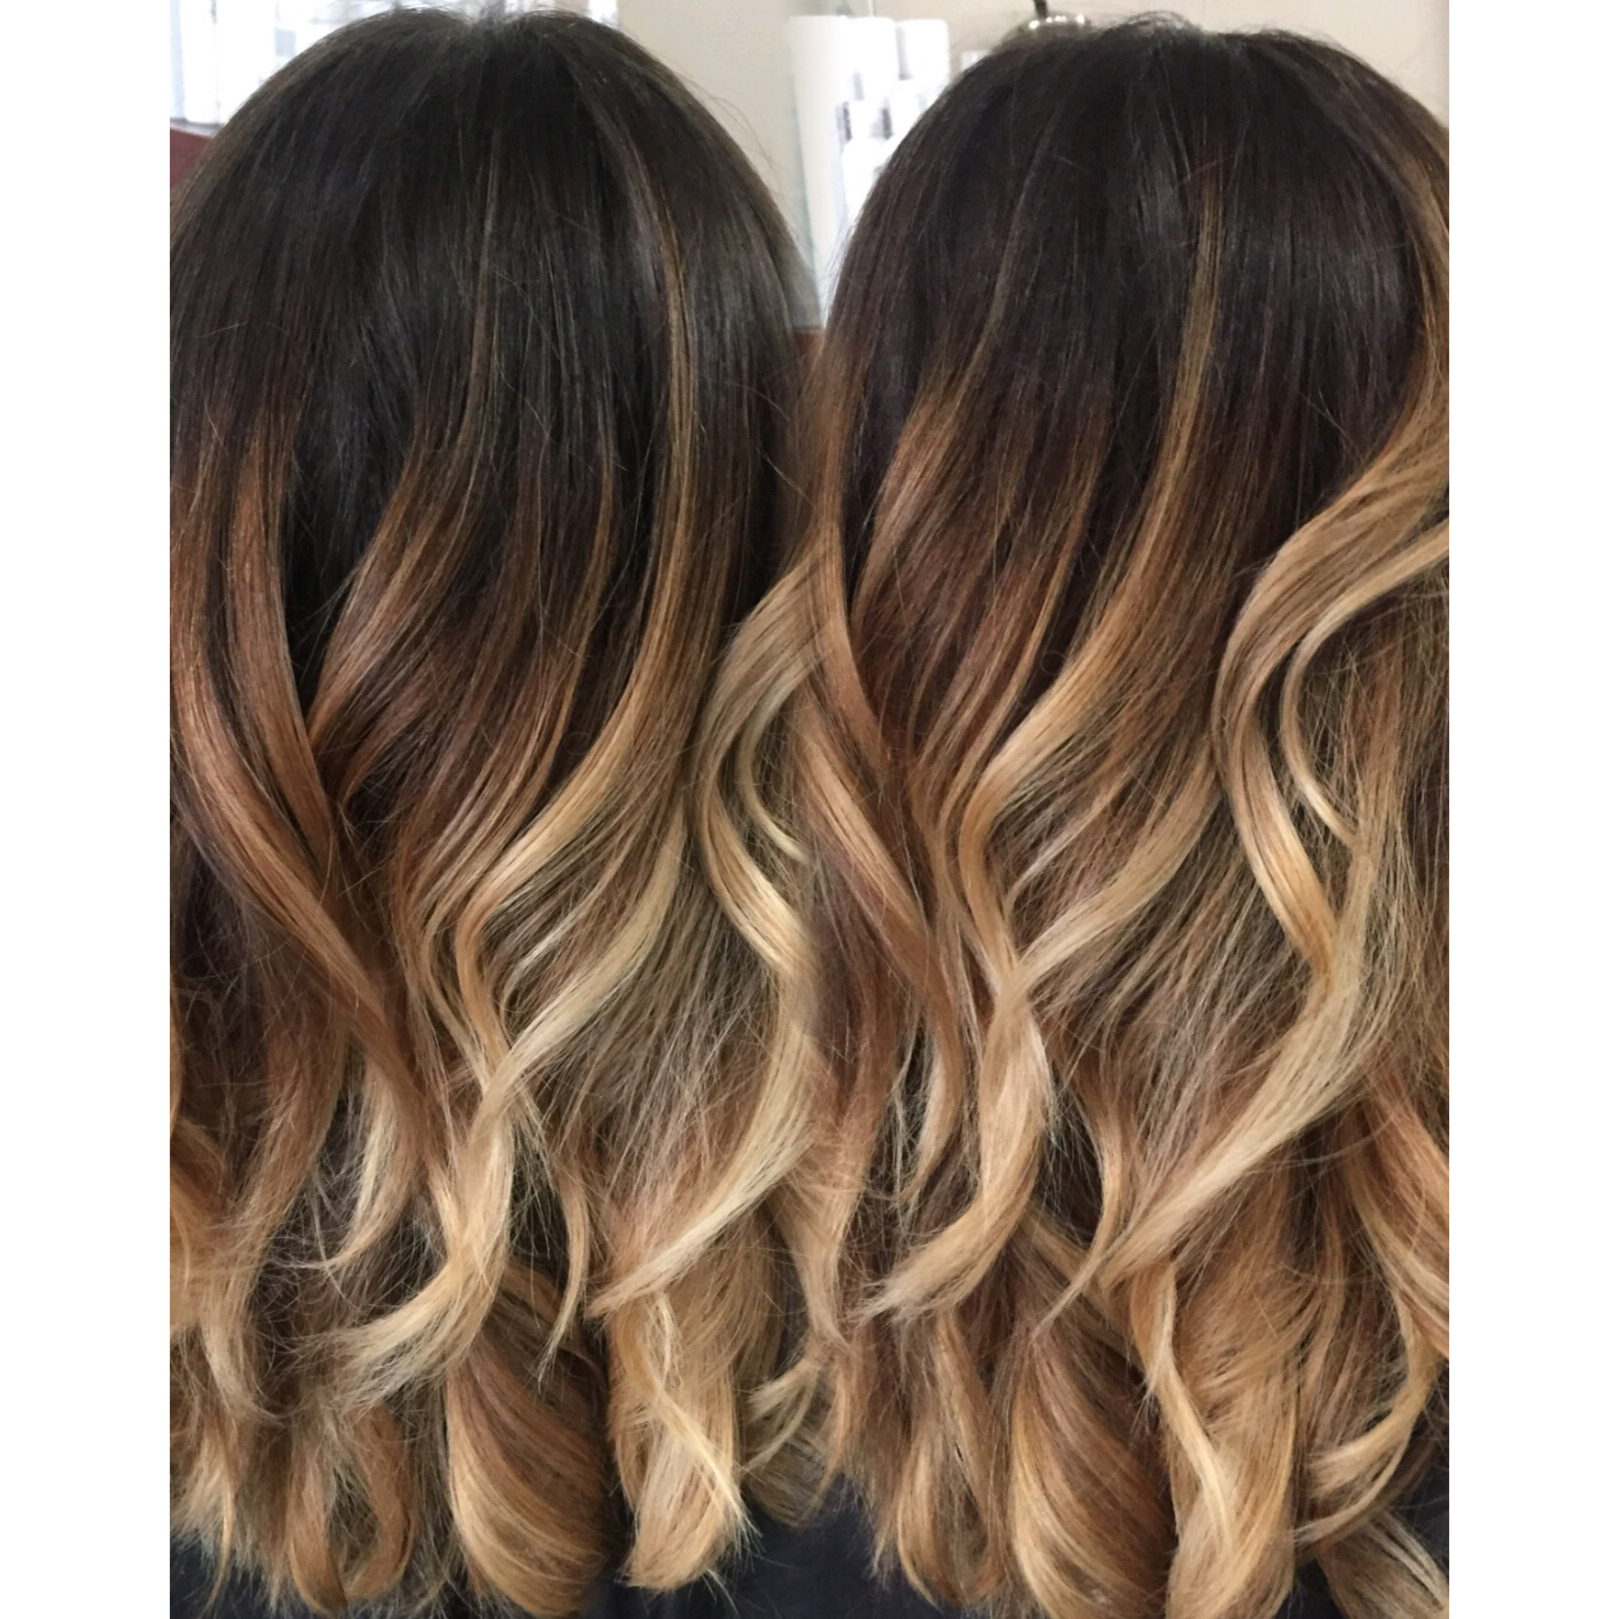 Colormelt balayage color melt hair painting freehand colorist